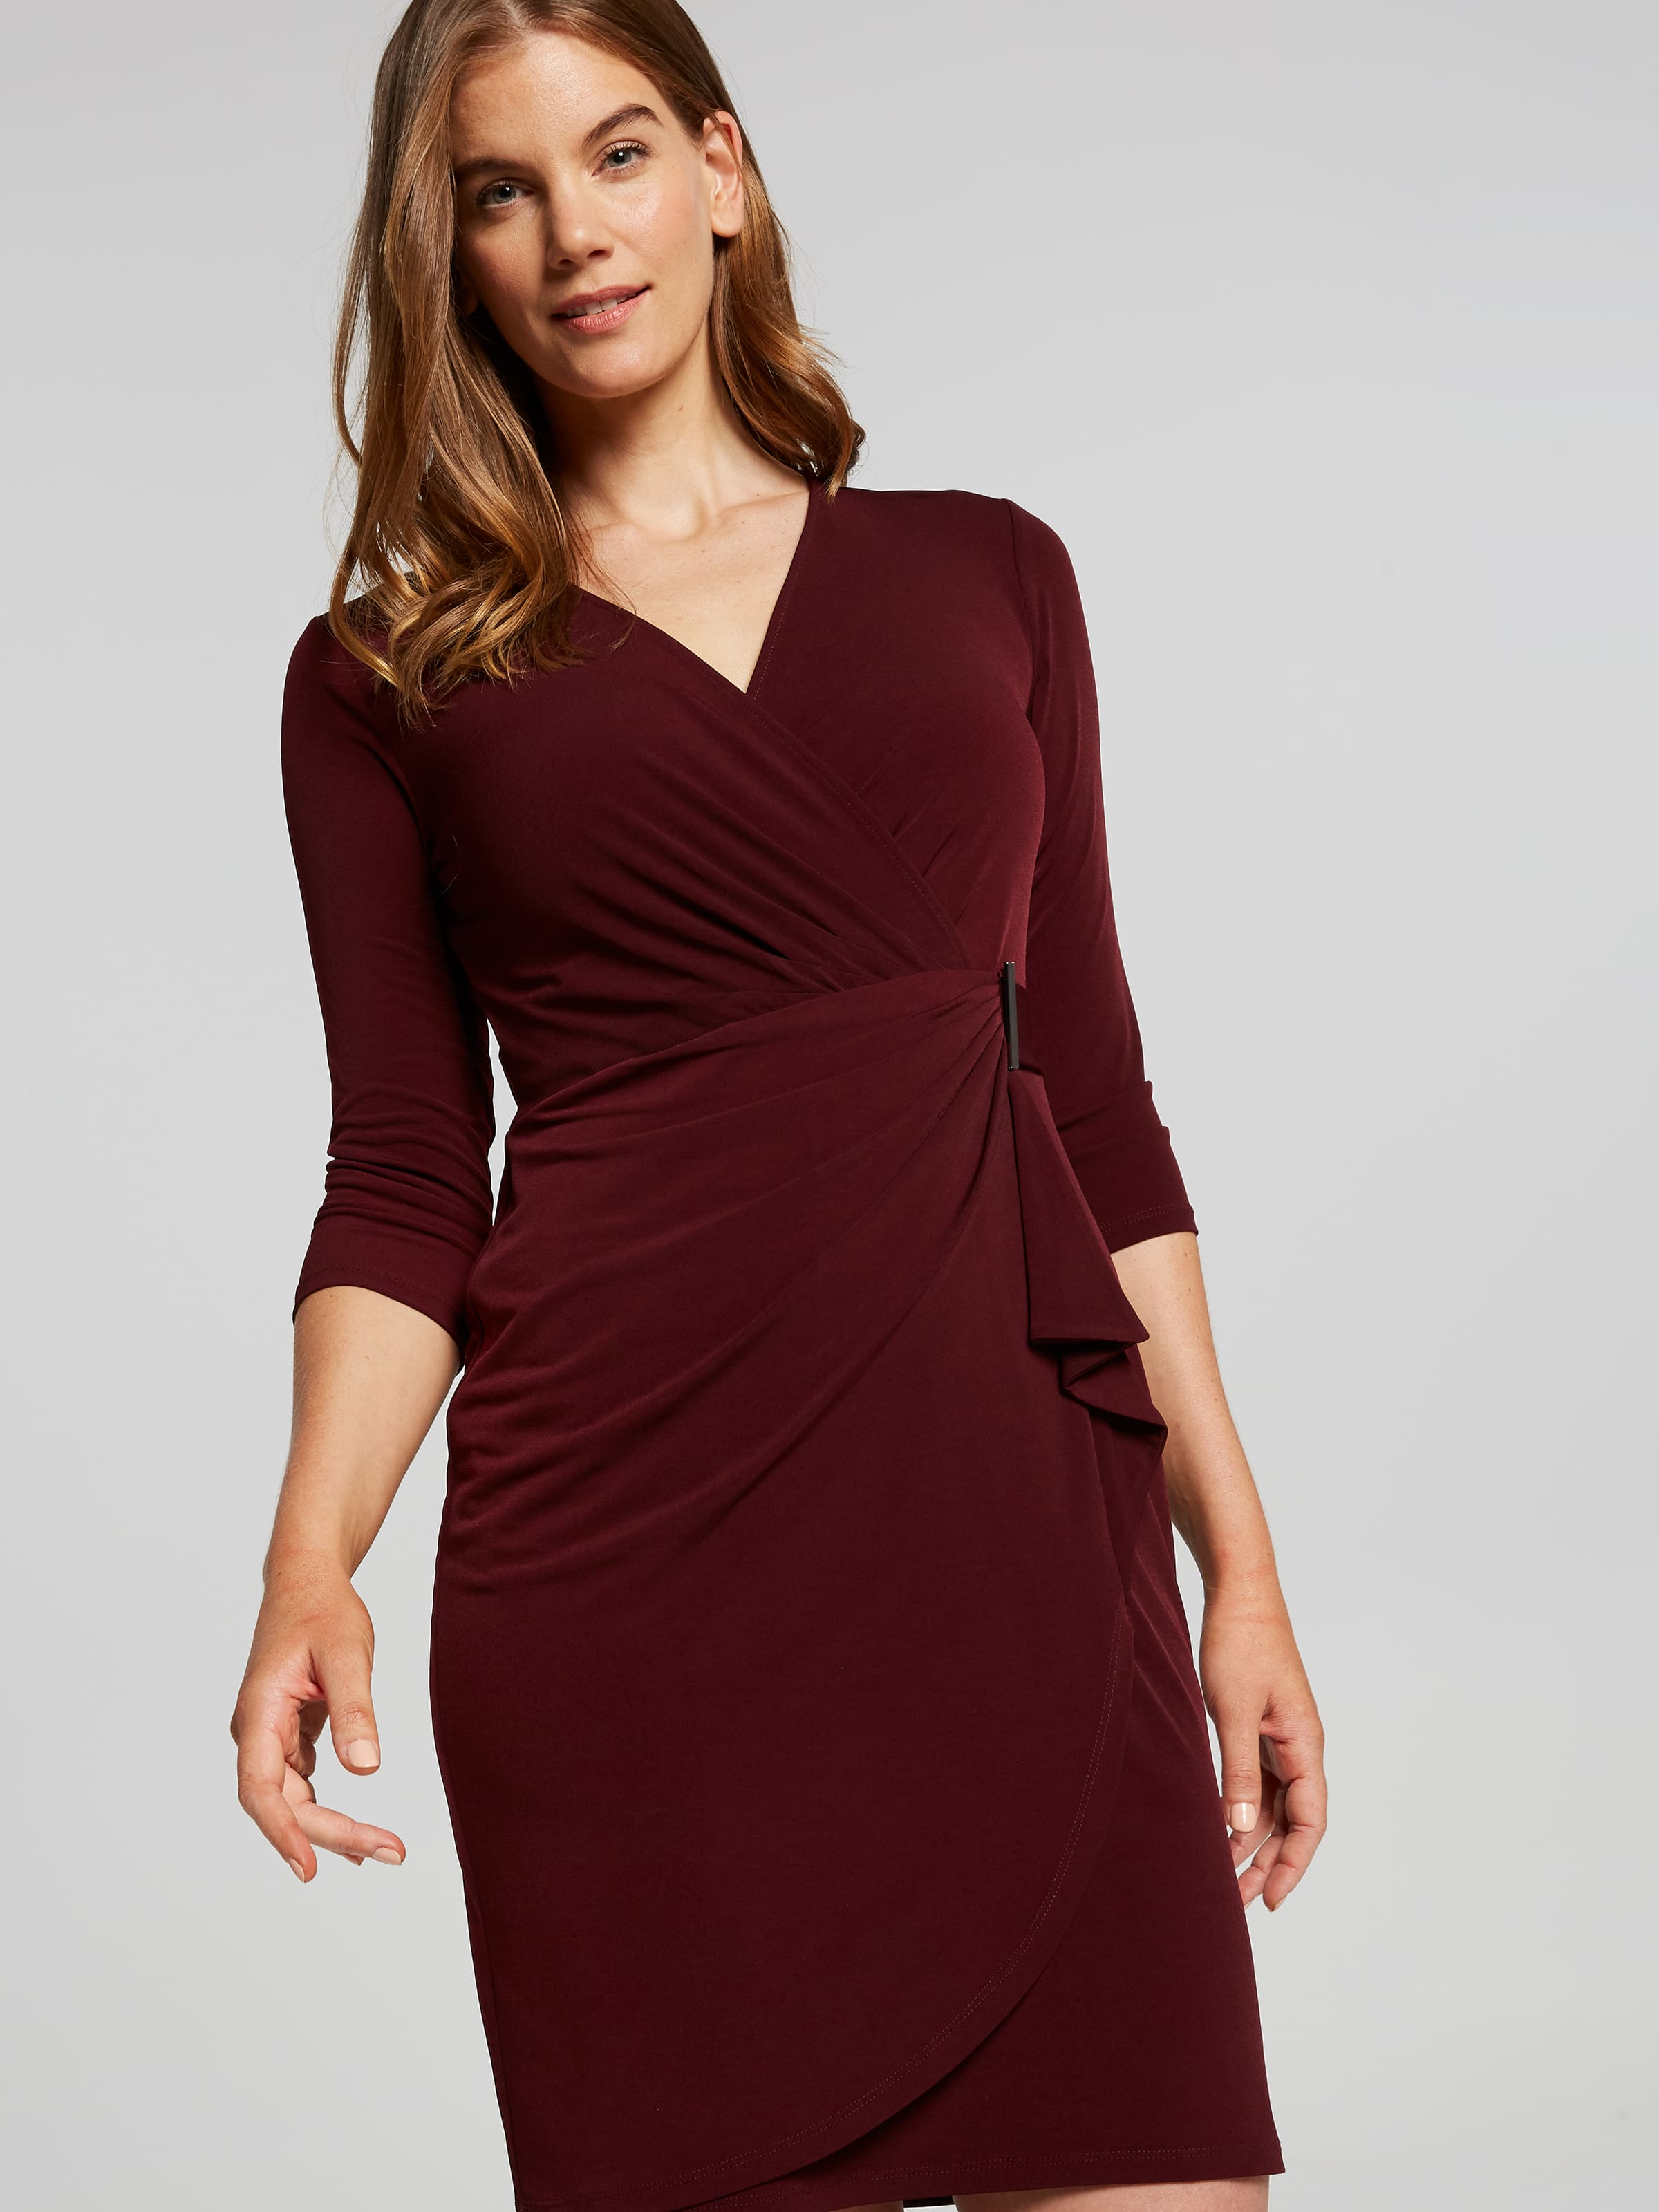 Image of Jacqui E Australia Jacqui E 3/4 Sleeve Venus Dress